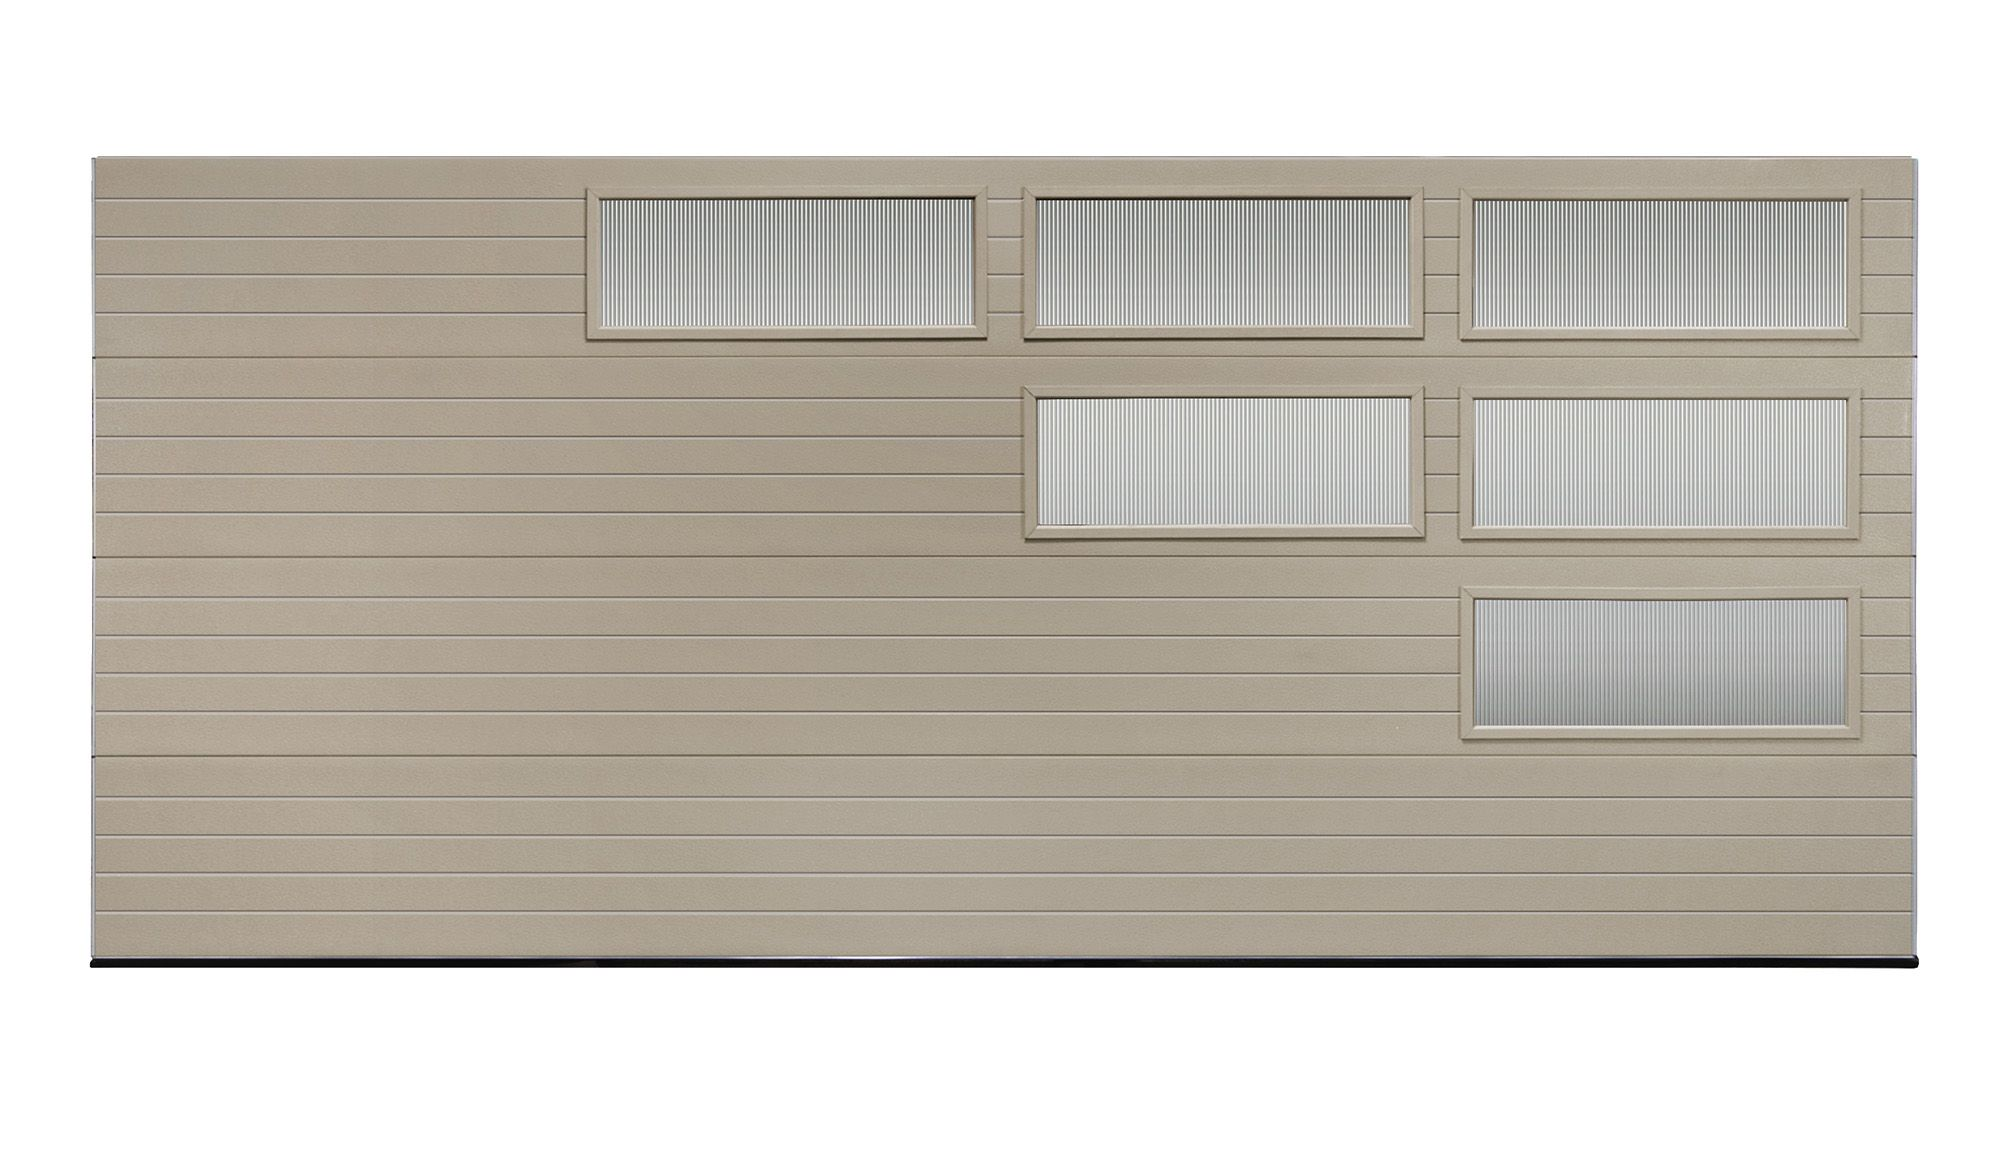 Clopay Modern Steel Collection Garage Door With Reed Glass In Windows Www Clopaydoor Com Garage Door Design Garage Doors Modern Garage Doors